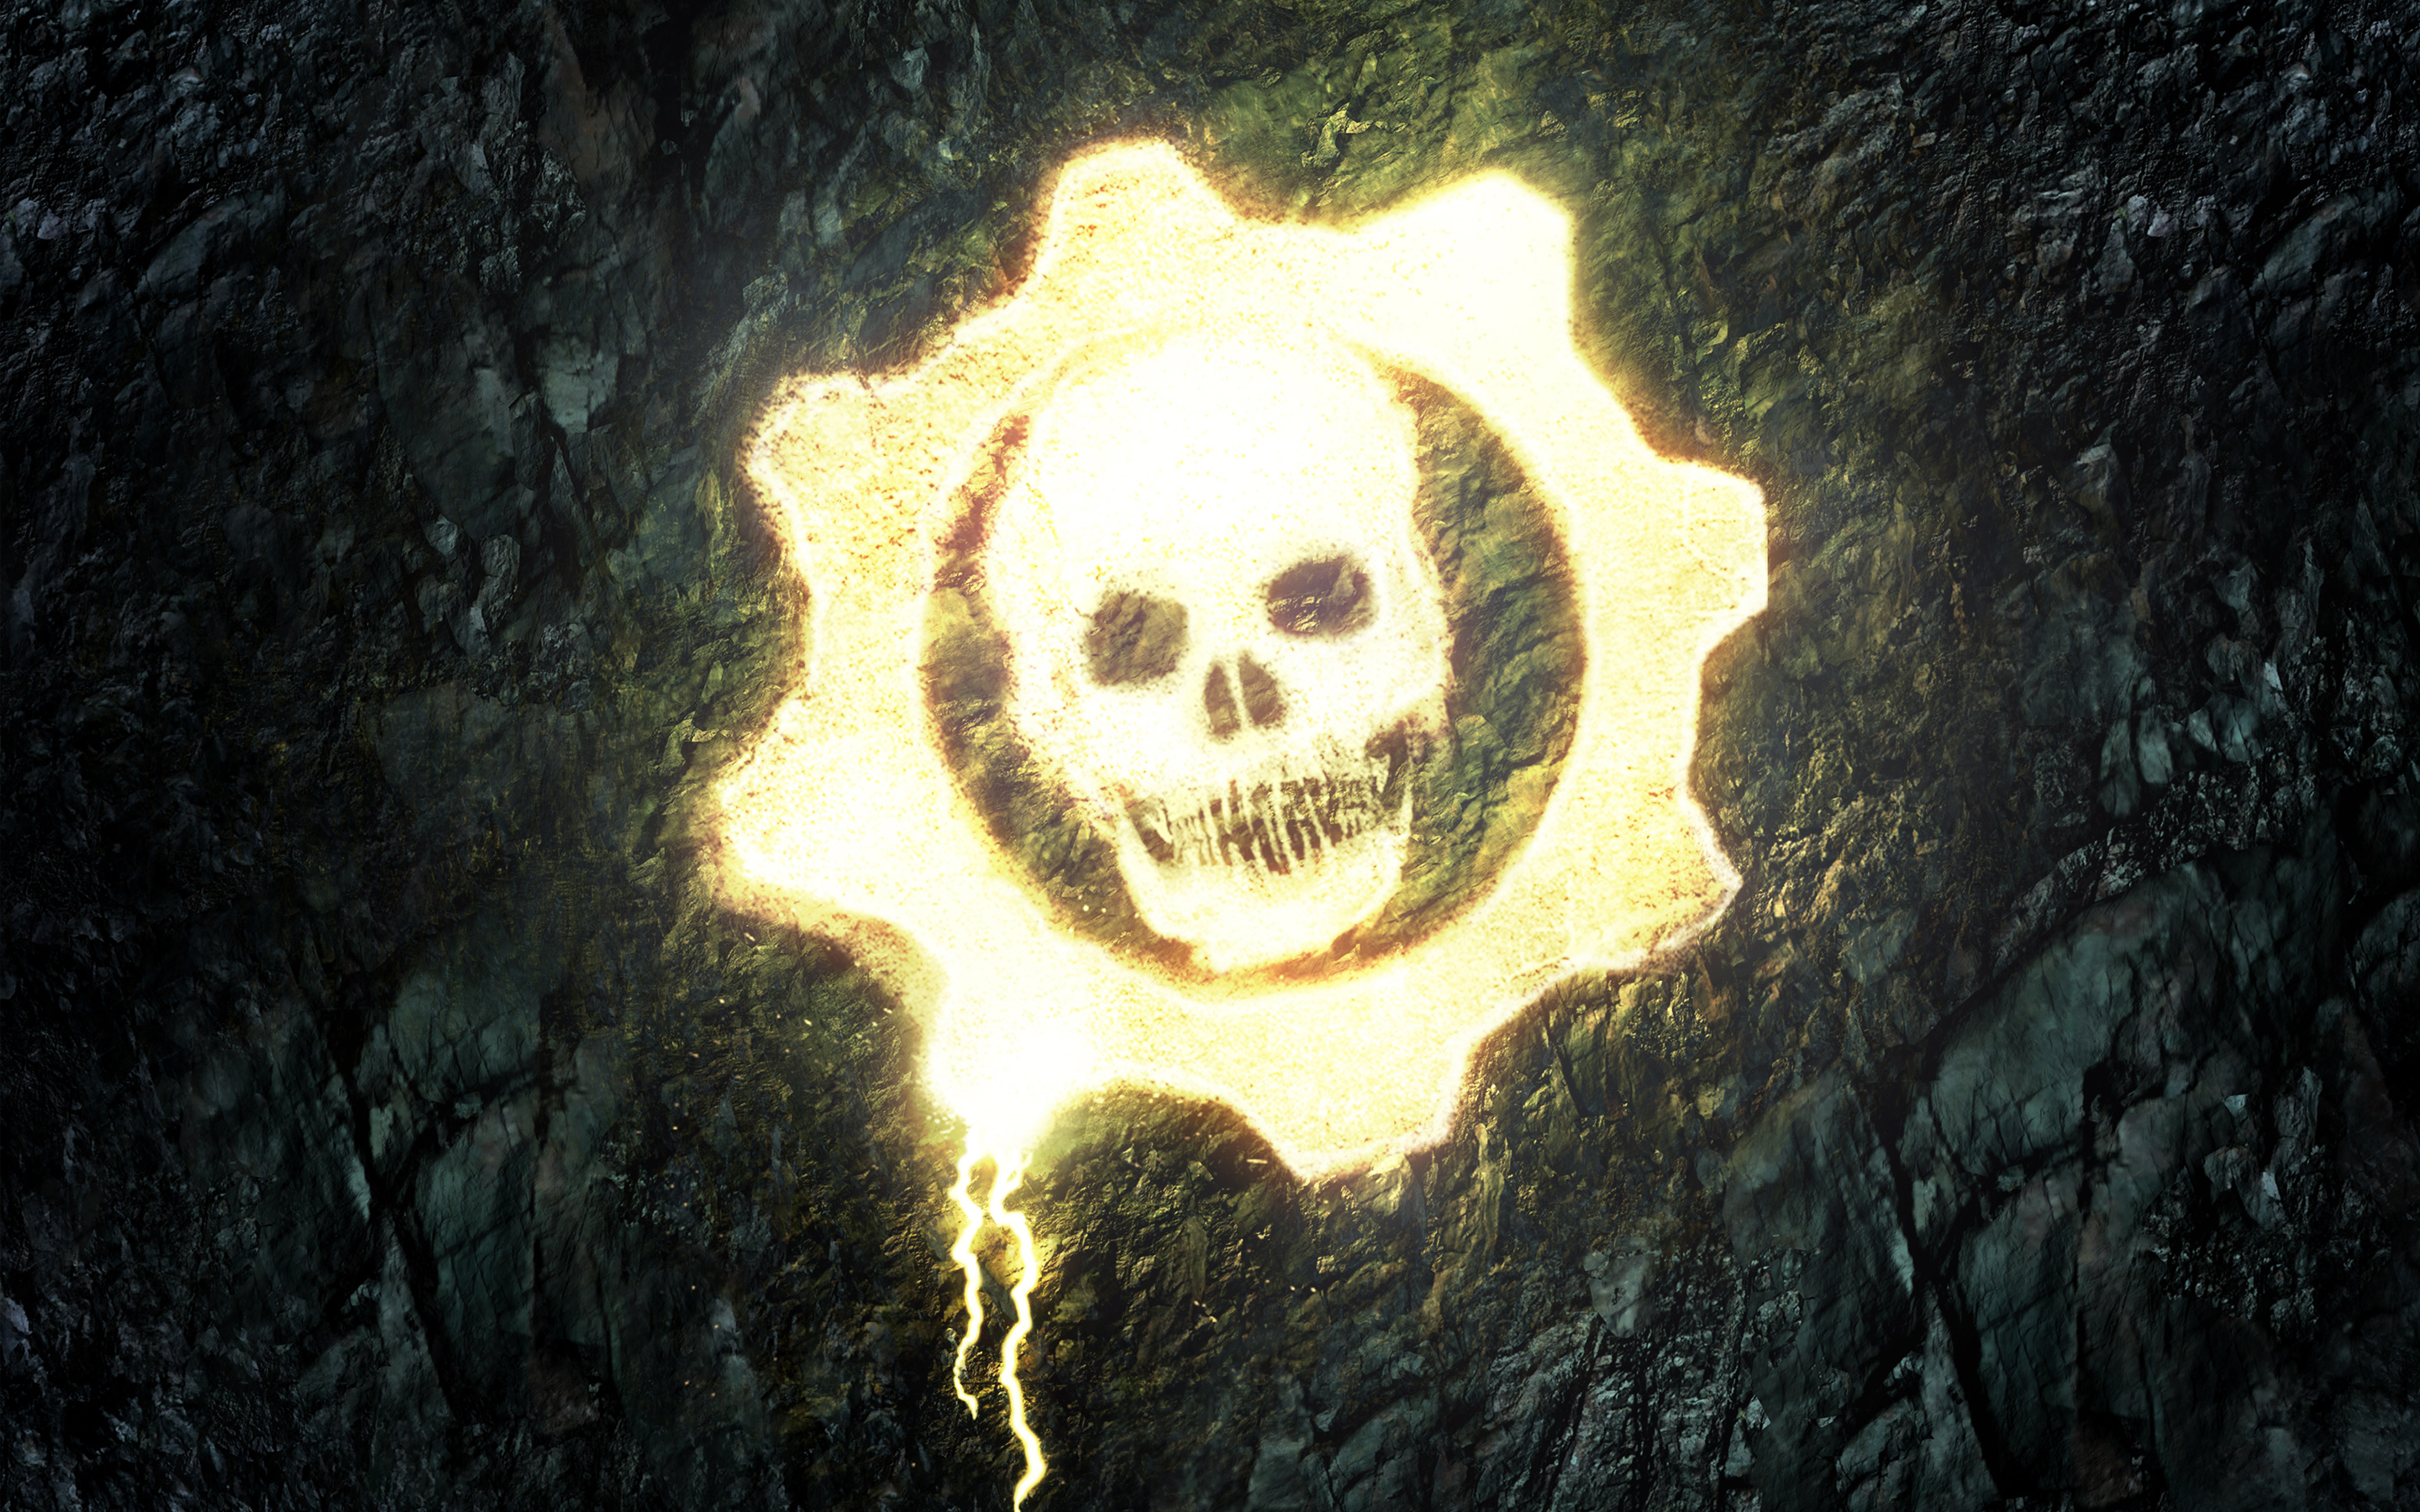 Gears of War Skull wallpaper